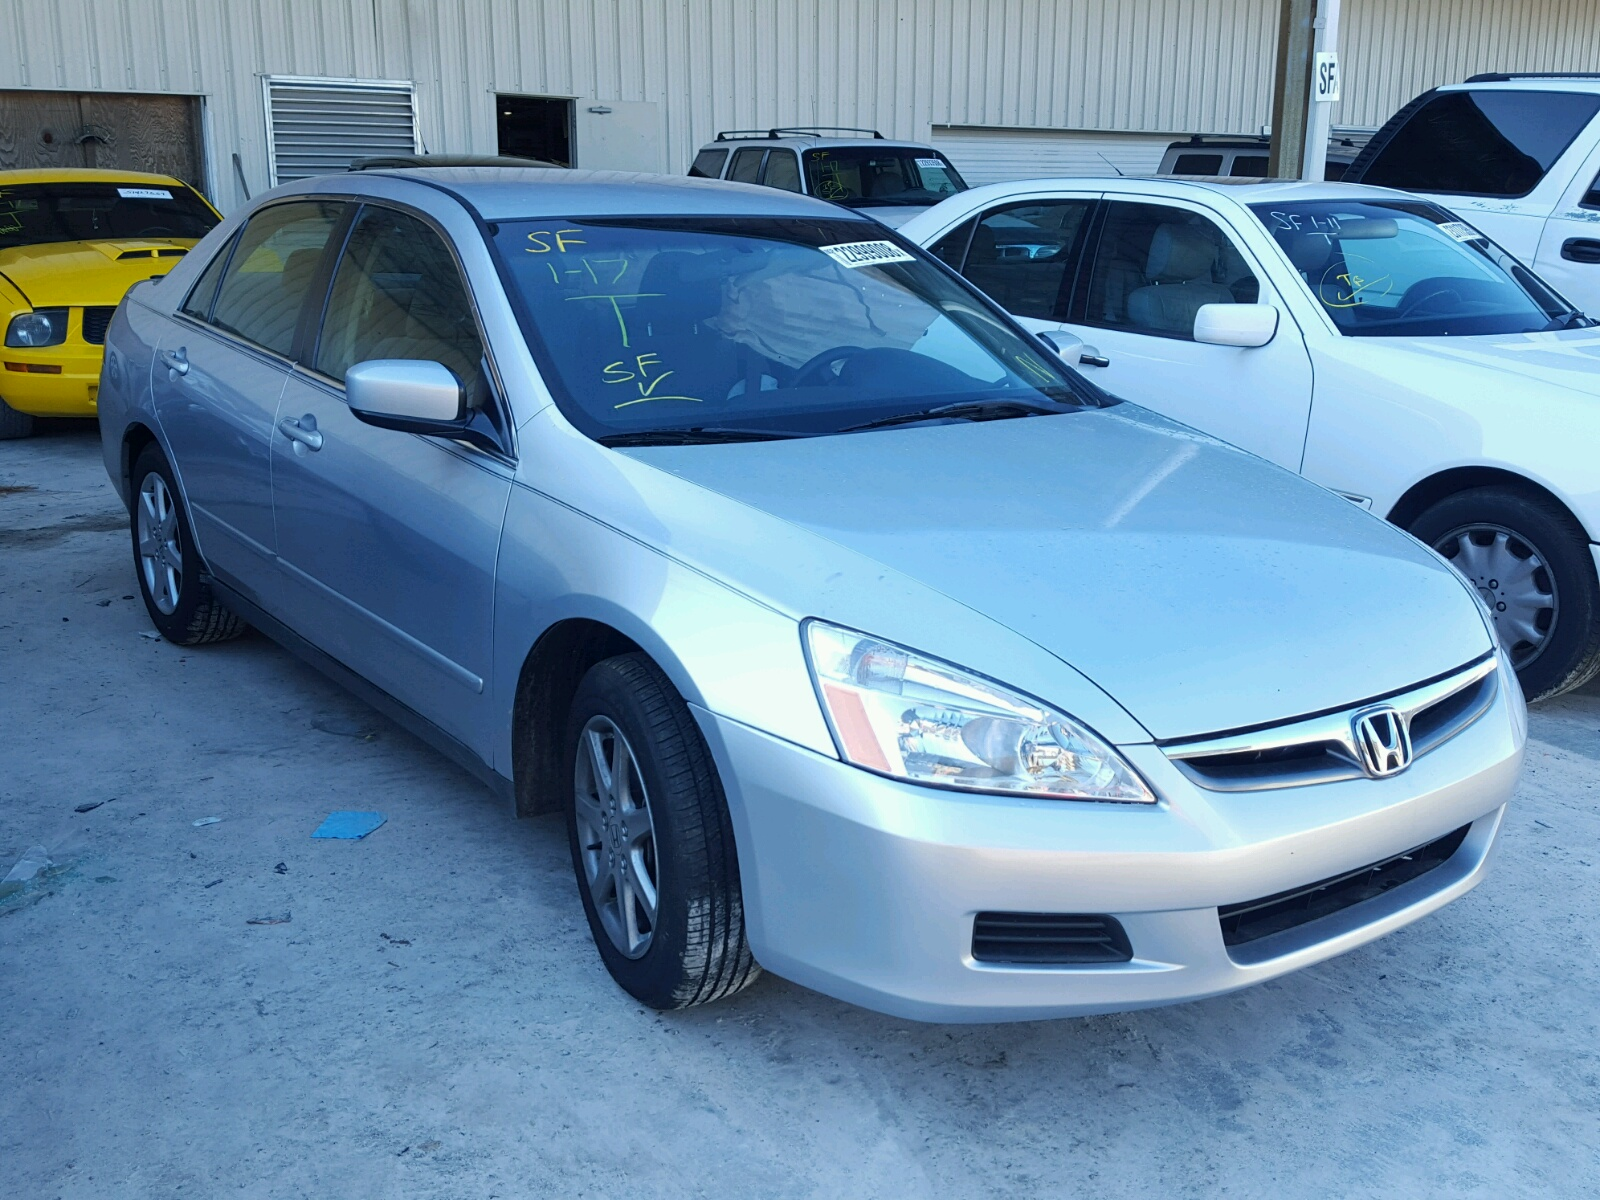 Auto Auction Ended on VIN 1HGCM A 2007 HONDA ACCORD LX in